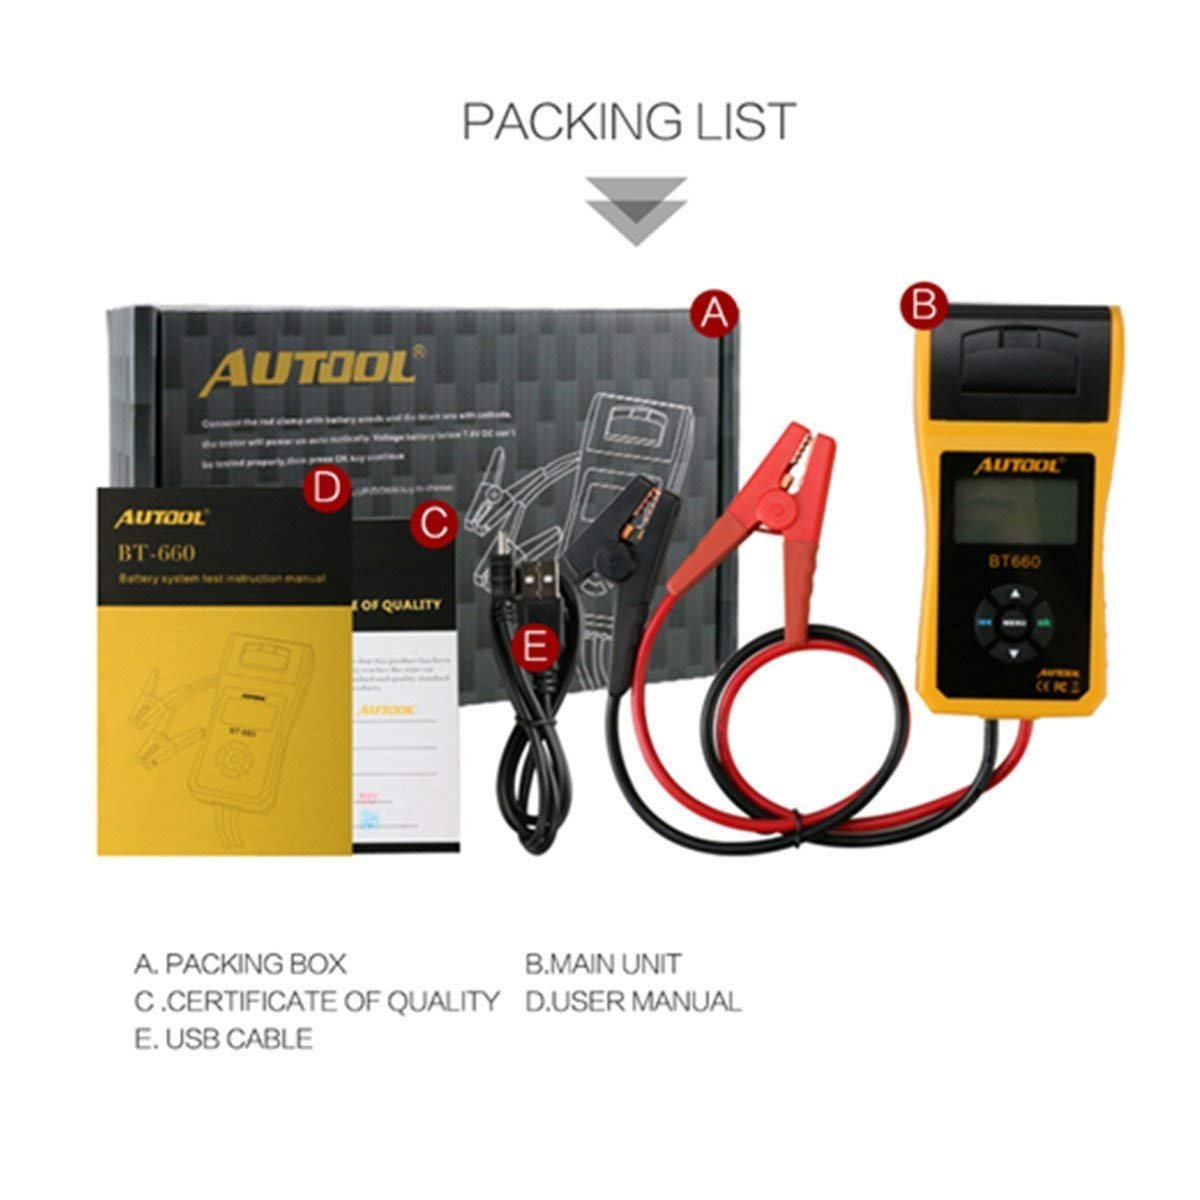 AUTOOL BT660 CCA 100-3000 12V/24V Battery Load Tester, Car Cranking and Charging System Analyzer Scan Tool with Printer for Heavy Duty Trucks, Cars, Motorcycles, Boats by AUTOOL (Image #7)